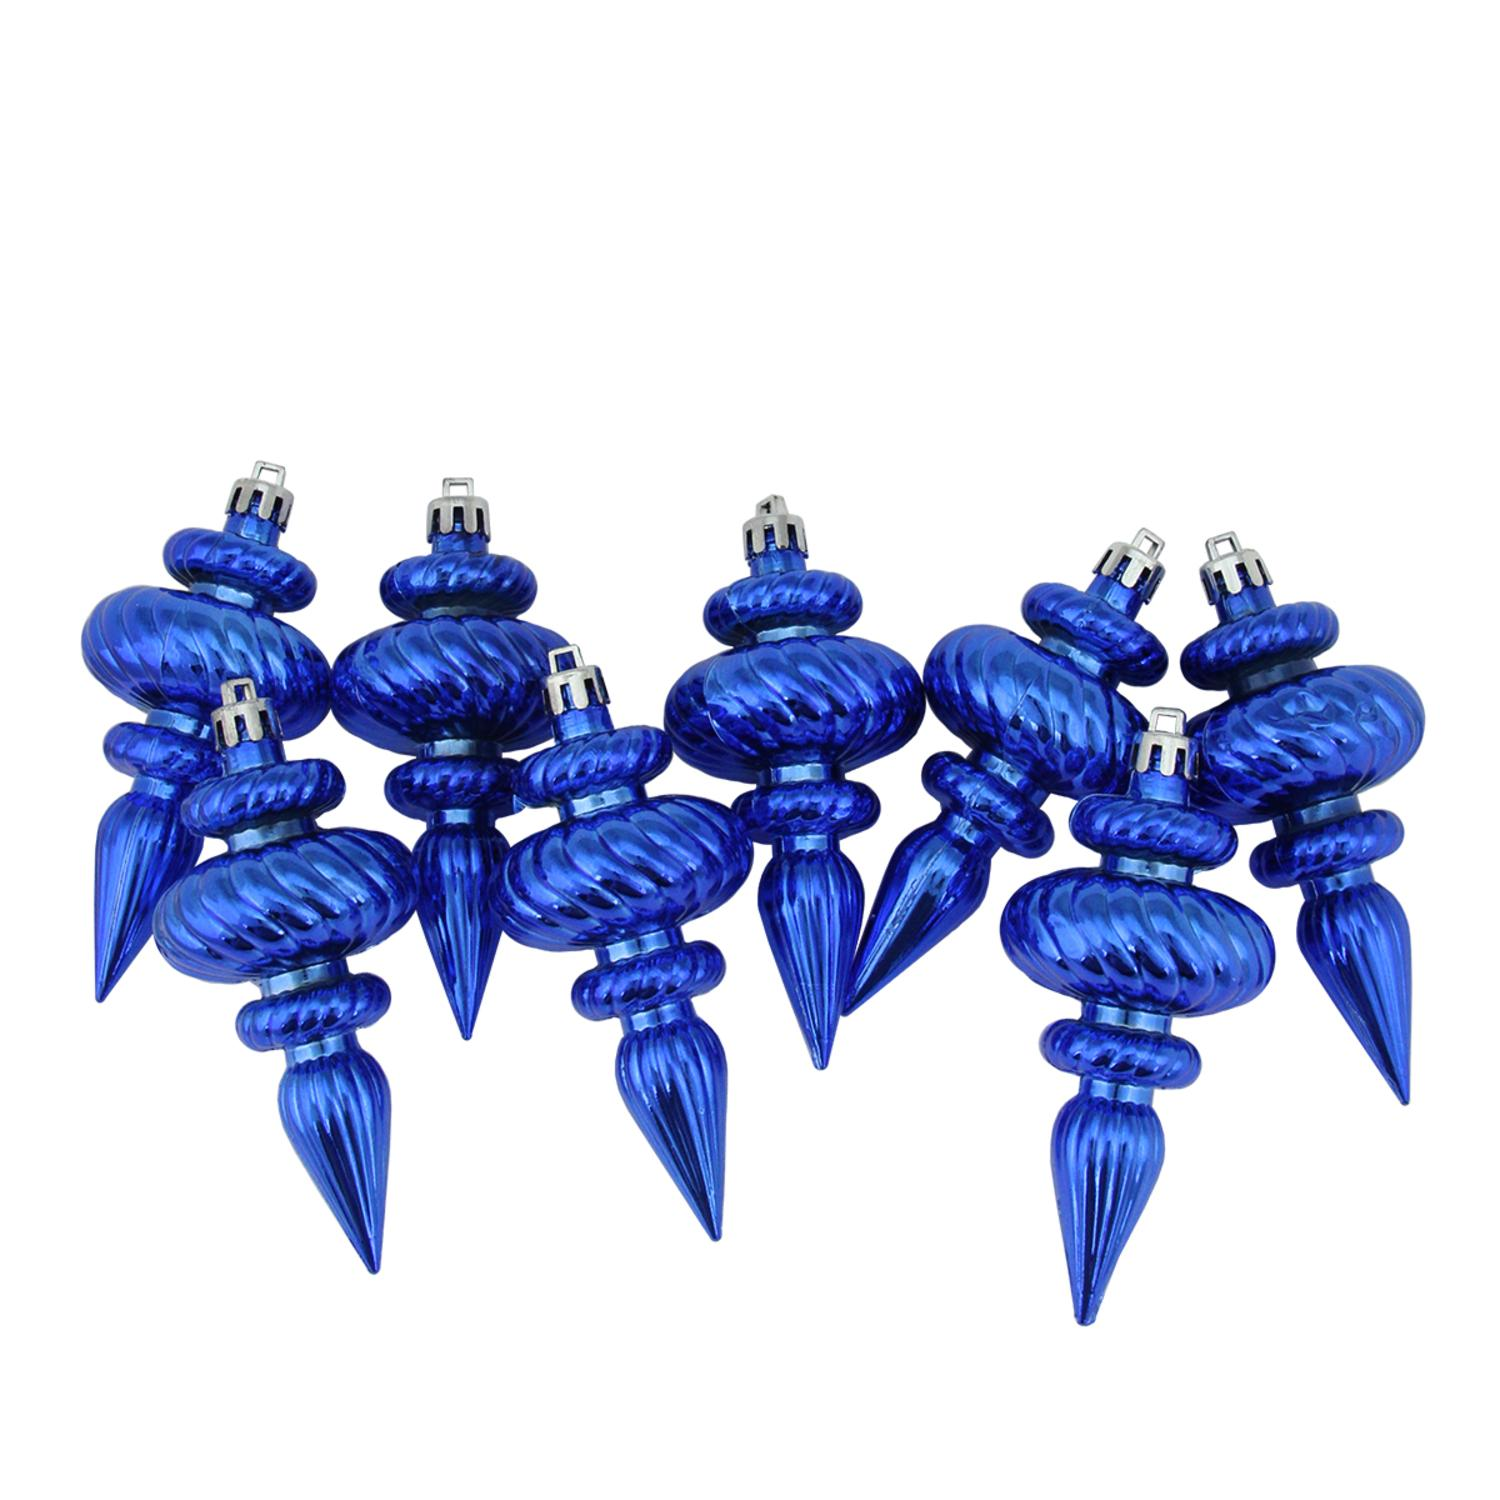 8ct Lavish Blue Shatterproof Shiny Ribbed Christmas Finial Ornaments 4.25""